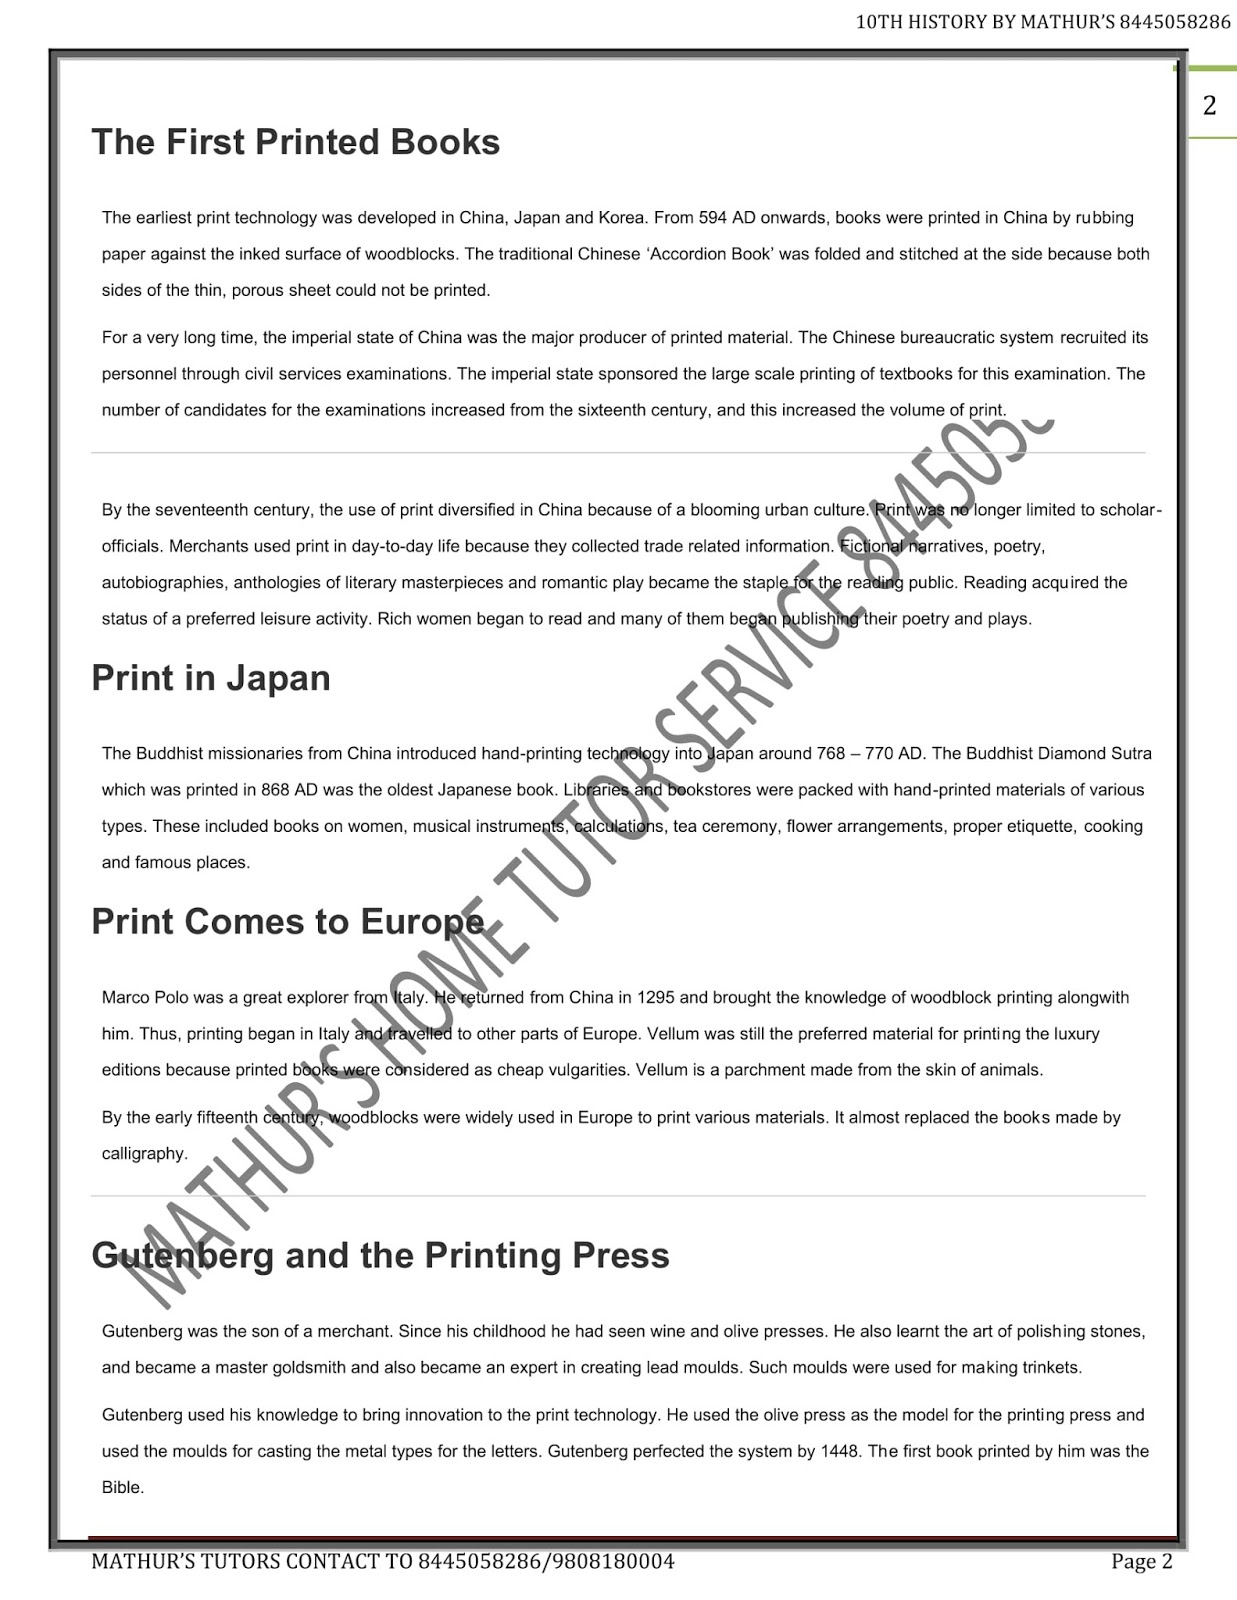 Class 10th History Notes Print Culture & Modern World